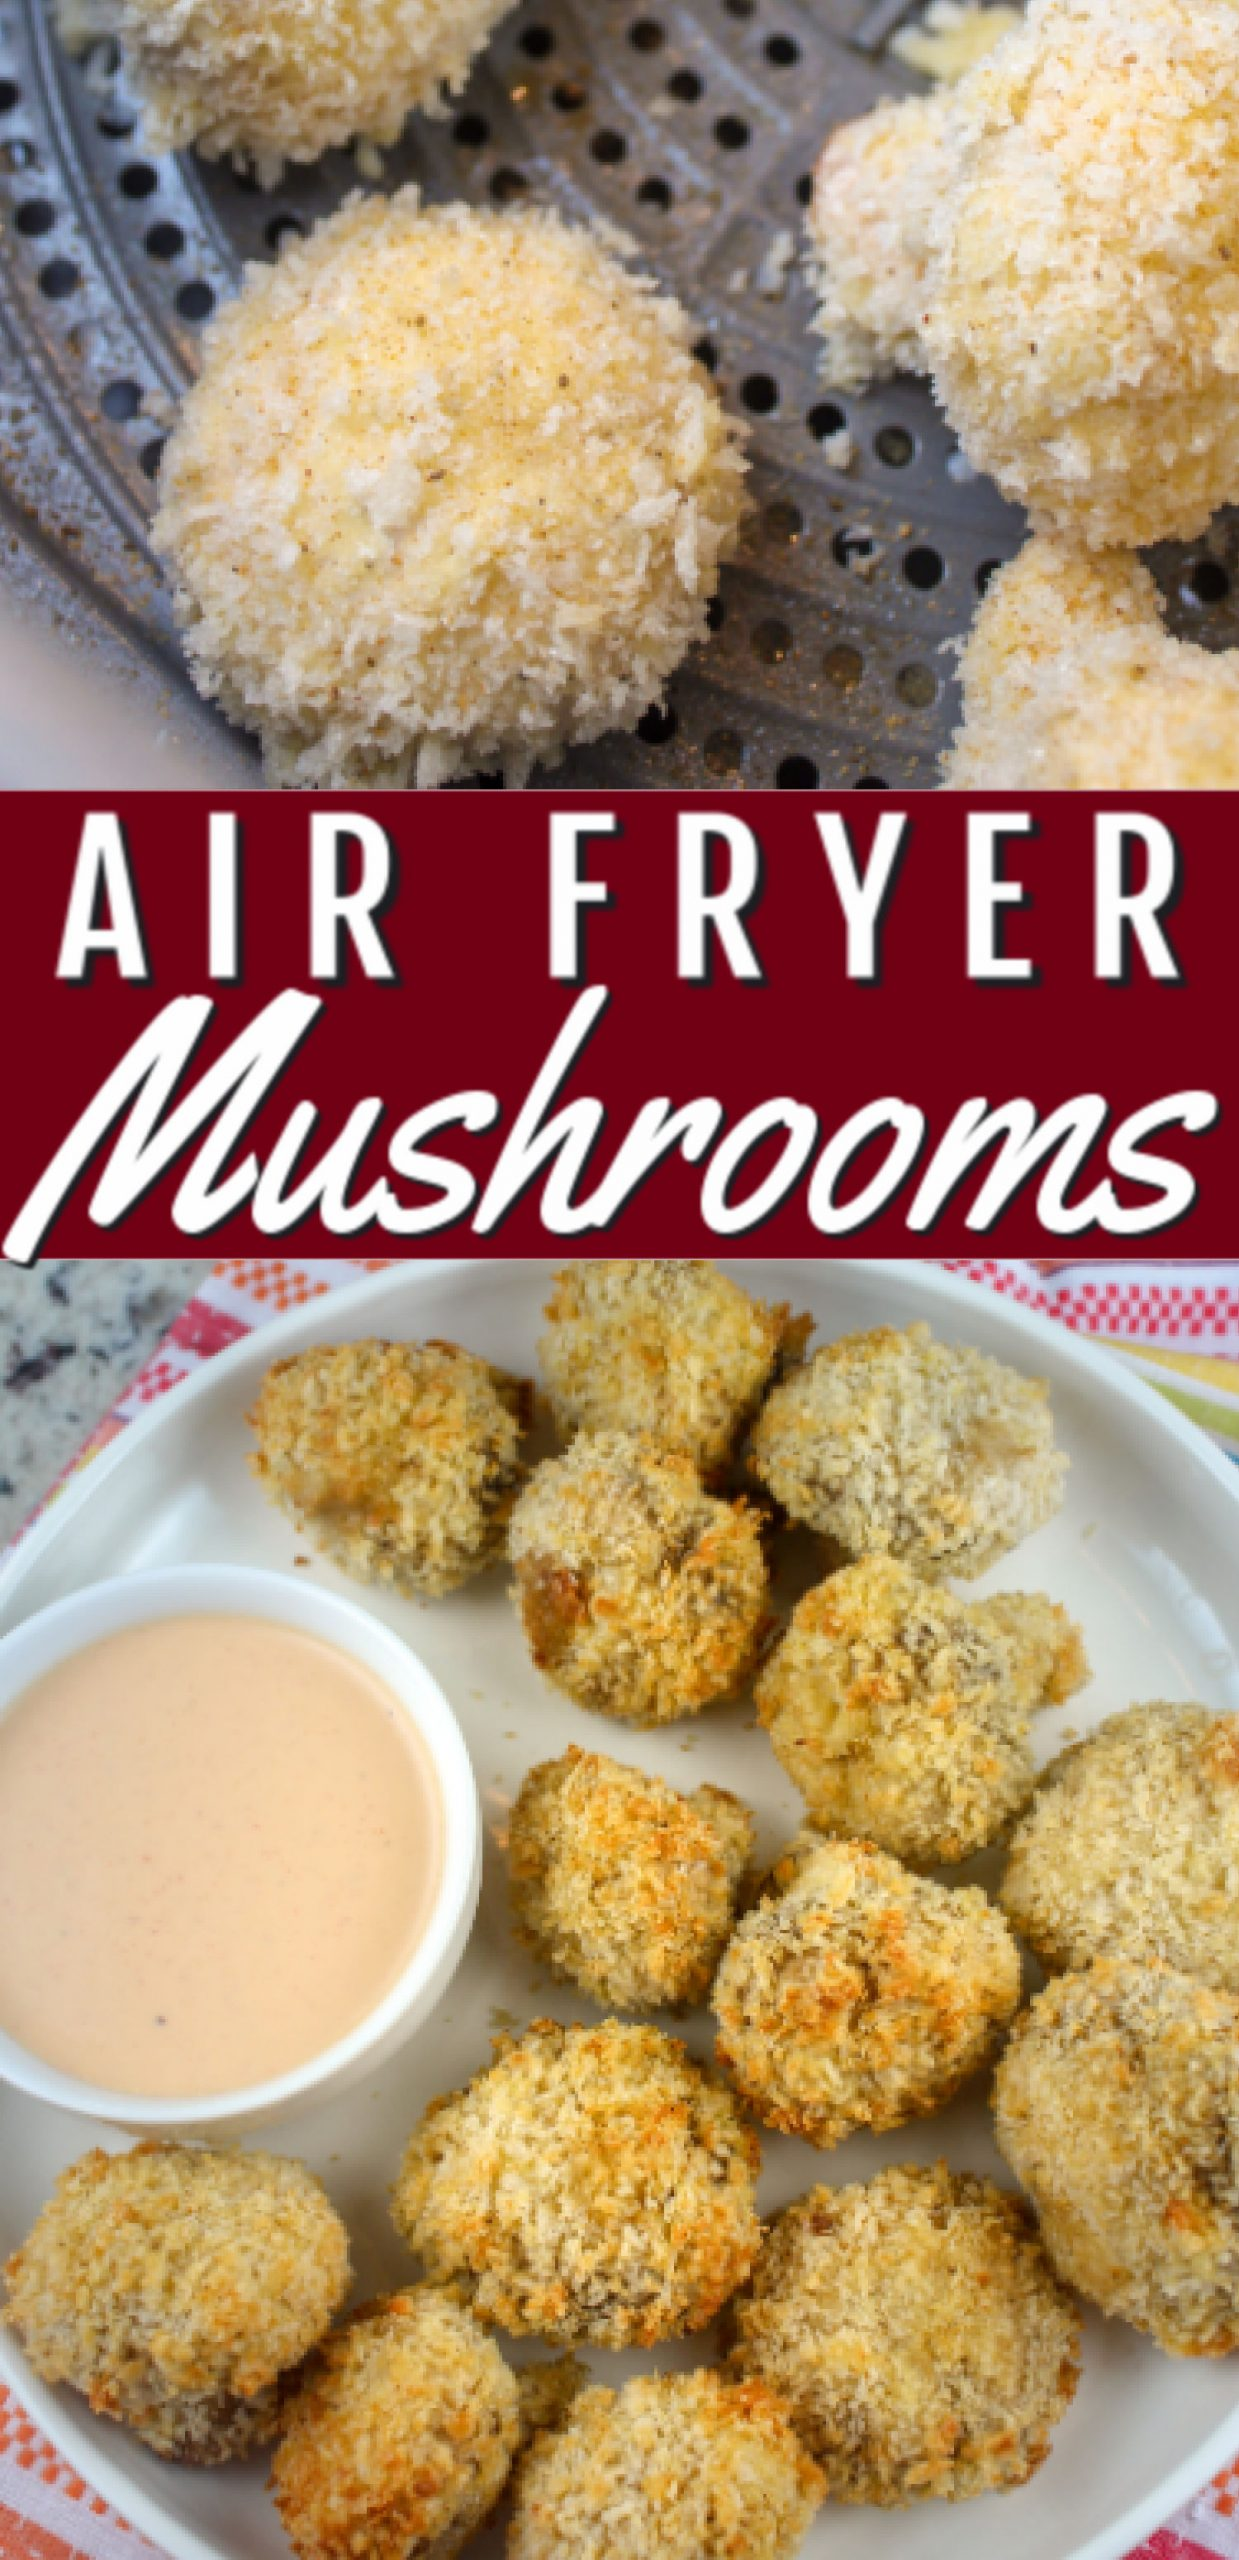 Breaded mushrooms are one of my favorite restaurant appetizers that I've never made at home - until now!!!! With the air fryer - there's no mess of oil - and they're crispy and just as delicious. These air fryer breaded mushrooms will hit the SPOT for you any night!  via @foodhussy